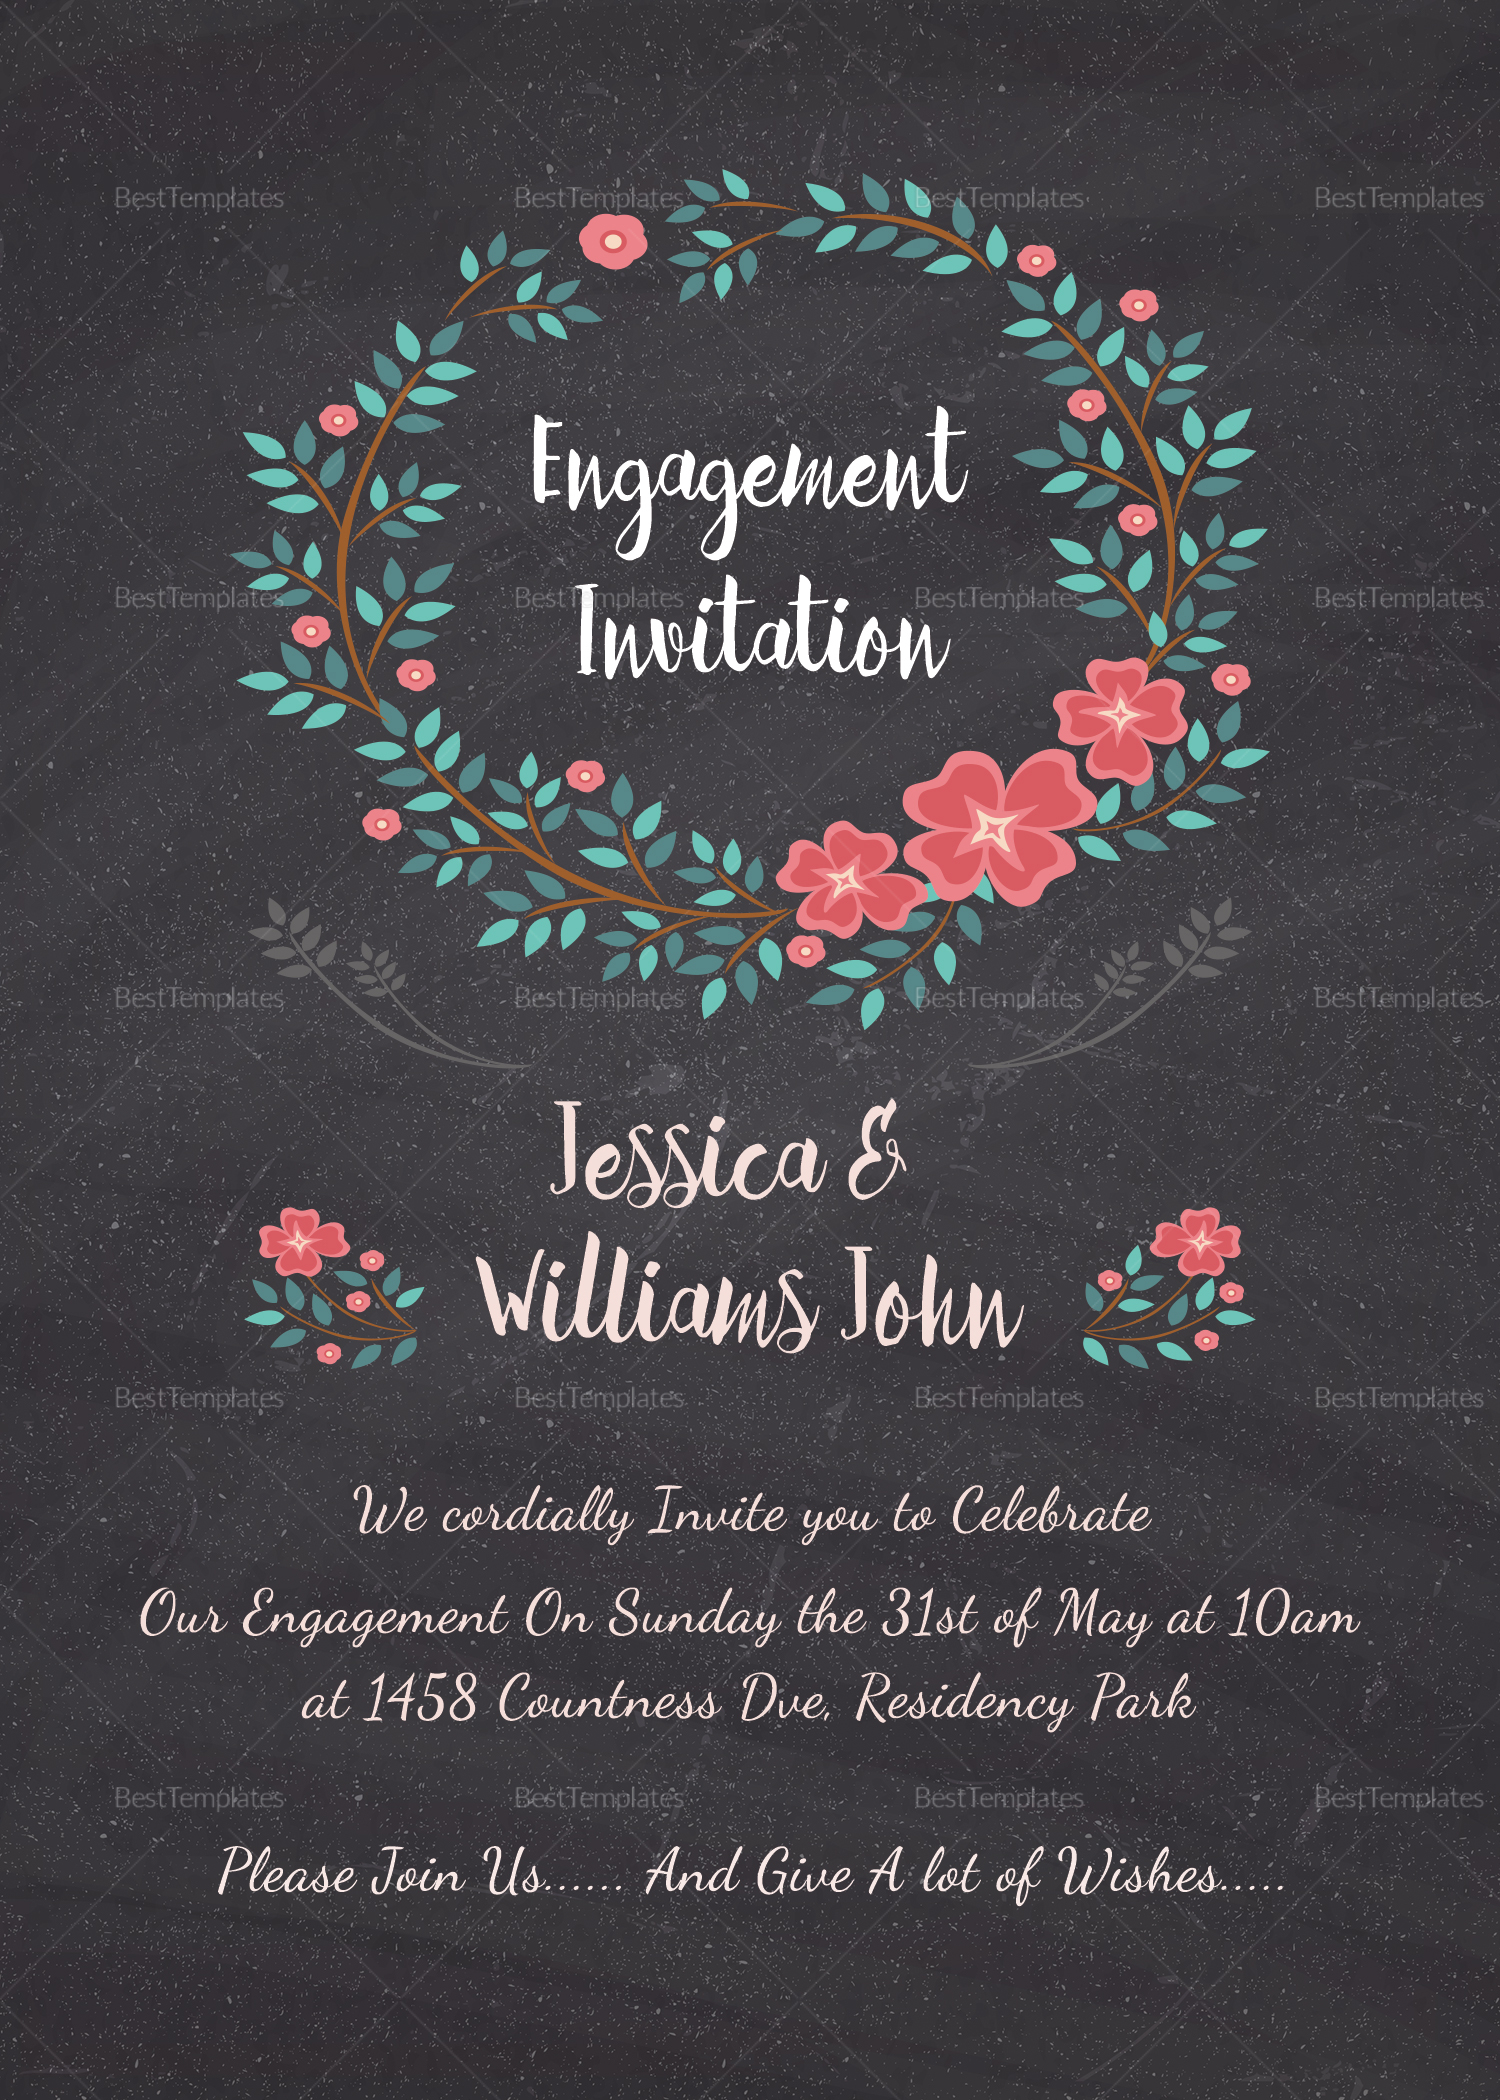 Engagement Invitation Card Design